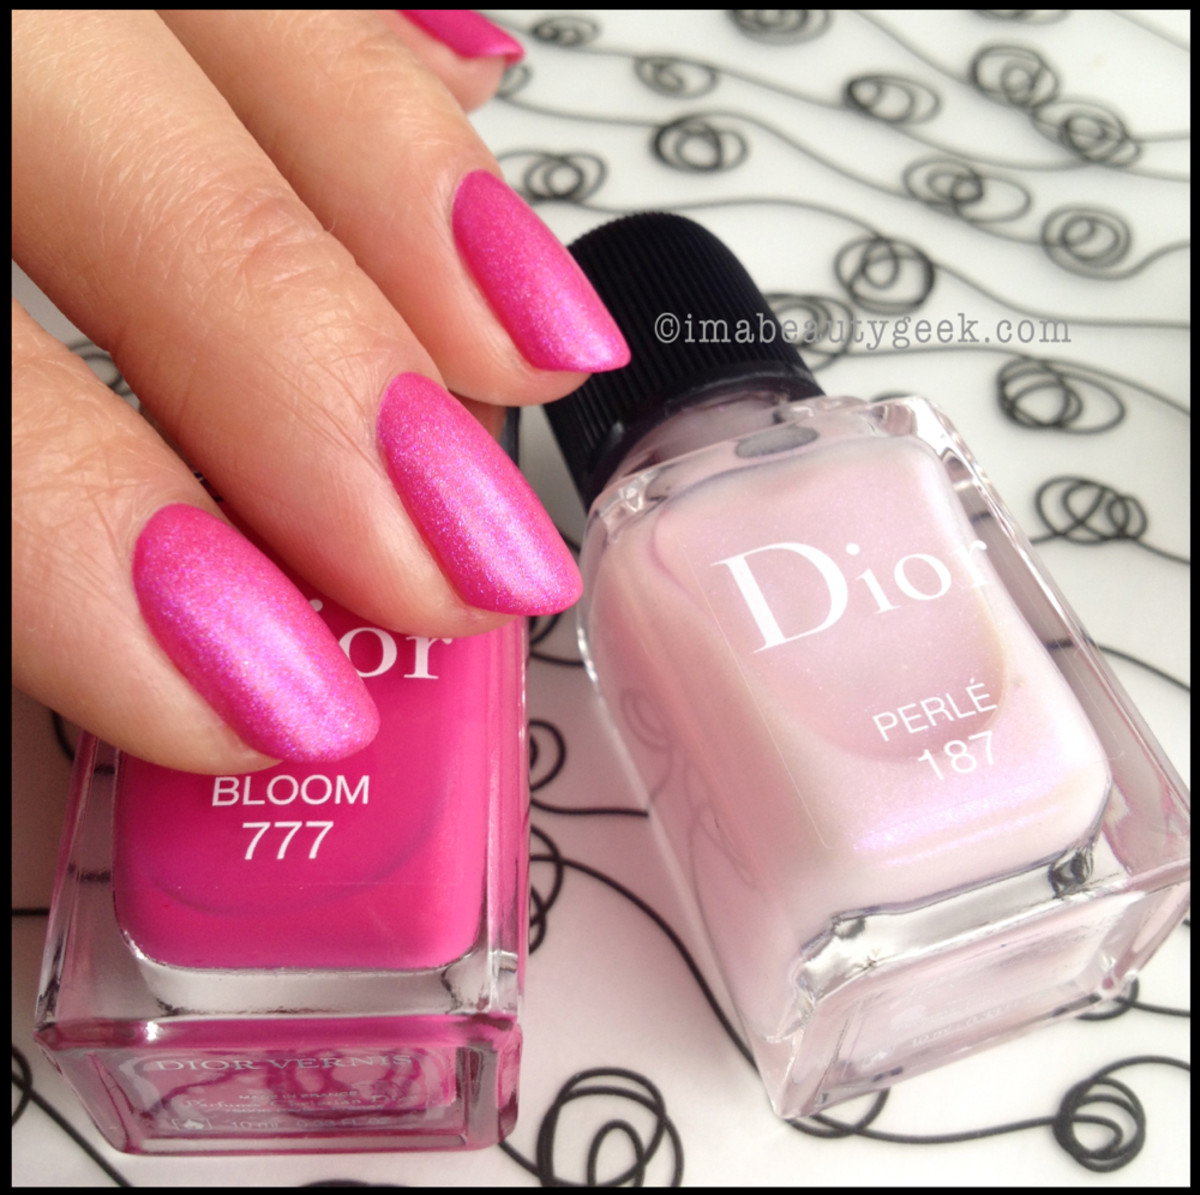 Dior Bloom 777 with Perle 187_Dior Spring 2014 nails Trianon edition